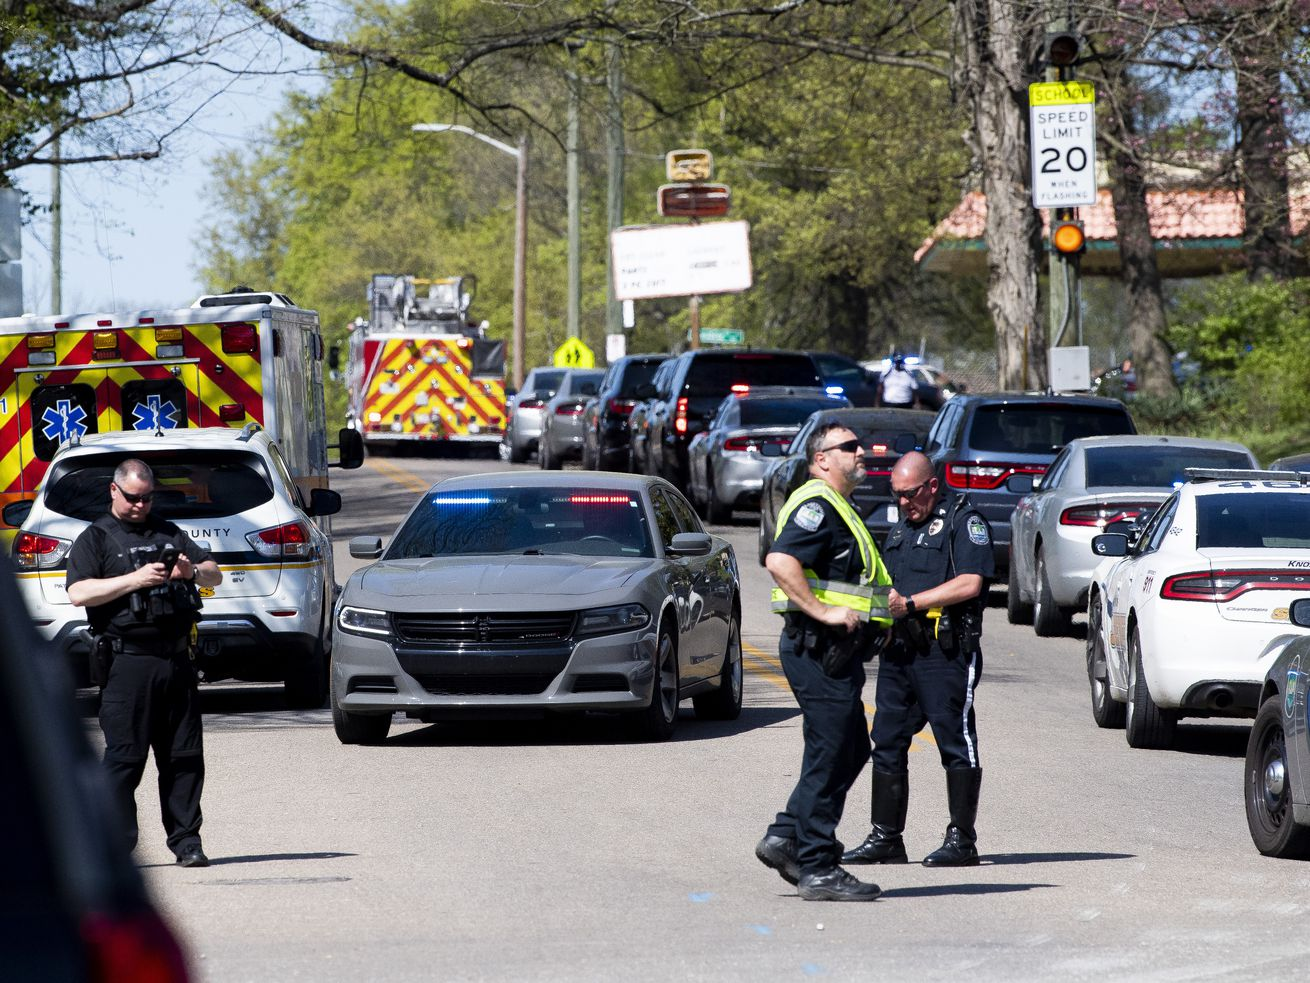 Police work in the area of Austin-East Magnet High School after a reported shooting Monday, April 12, 2021. Authorities say multiple people including a police officer have been shot at the school.